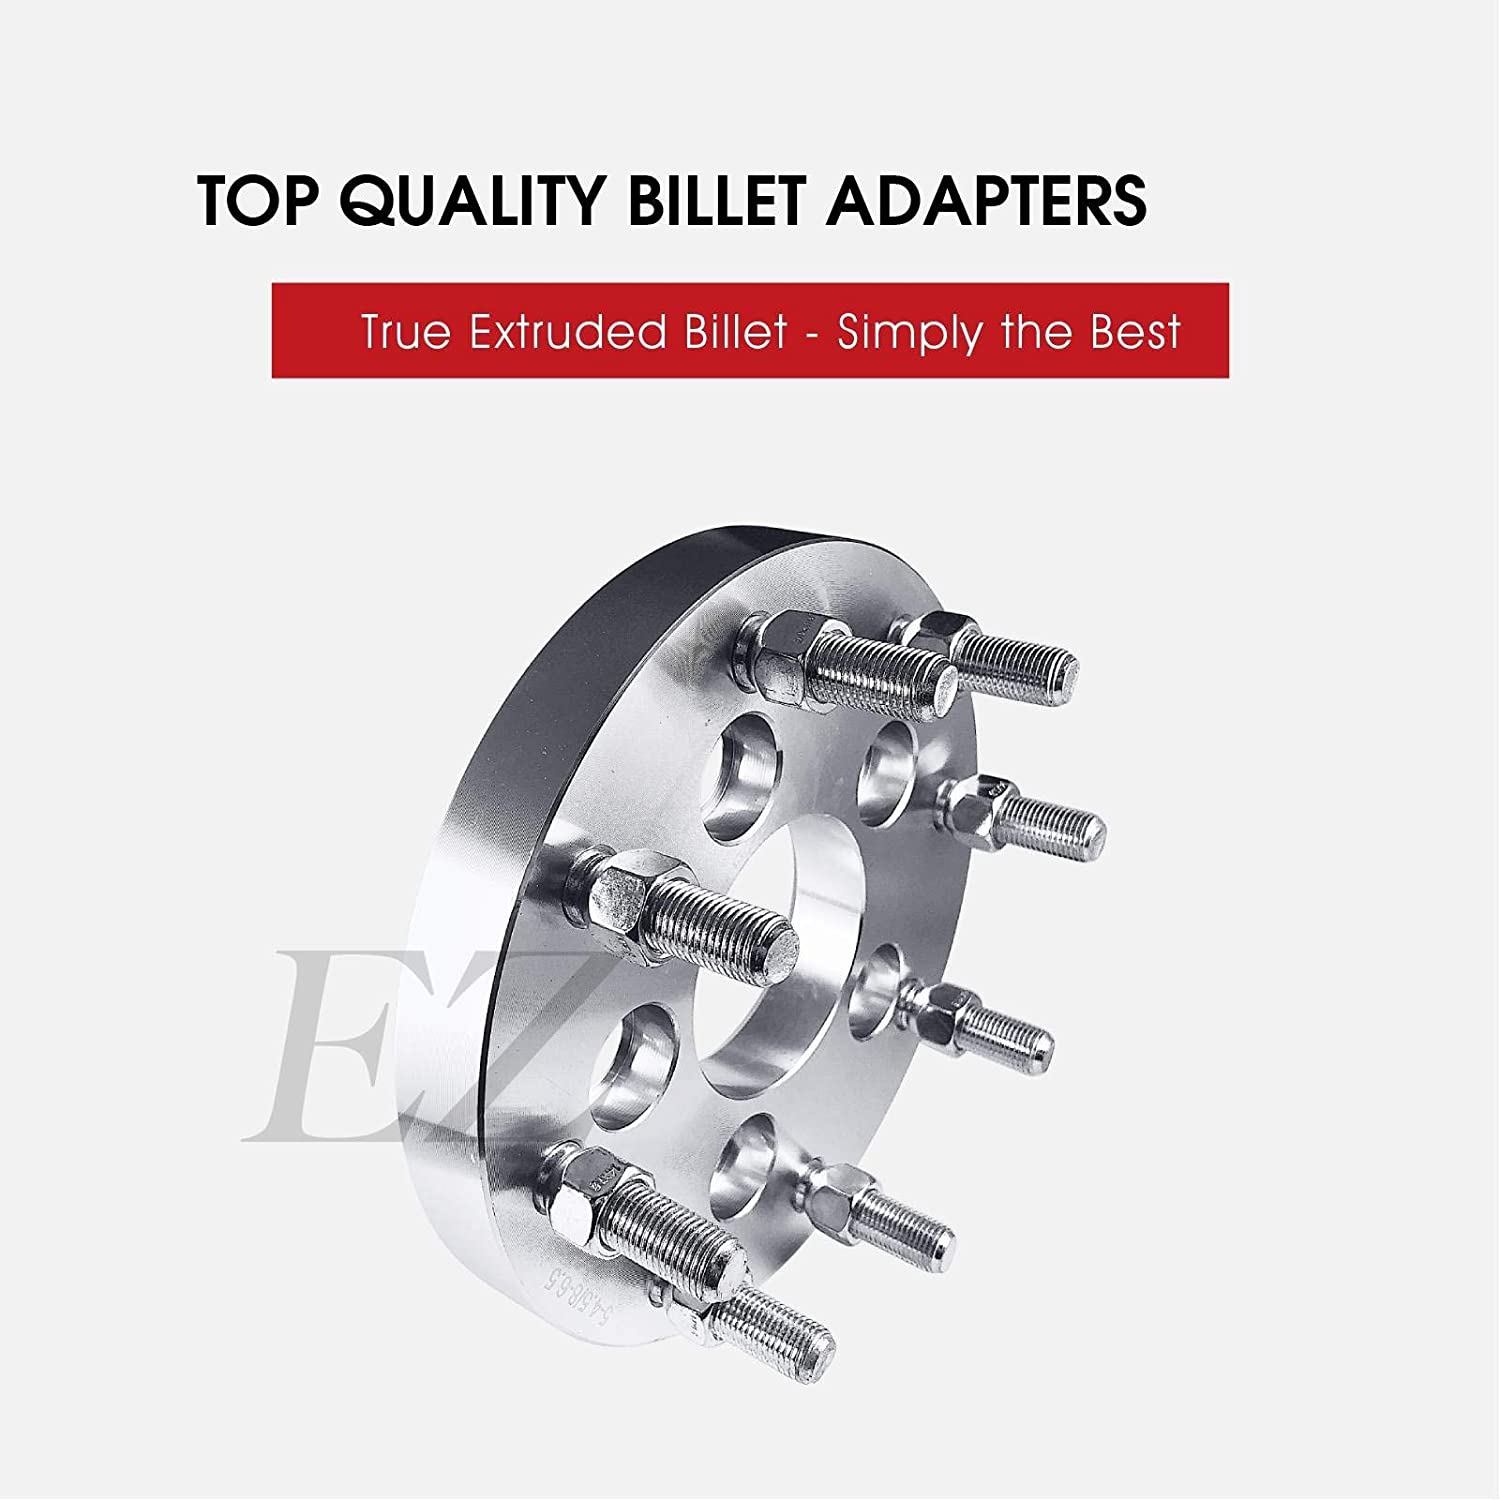 EZAccessory 2 Wheel Adapters 5x4.5 to 8x170 Thickness 1 Inch